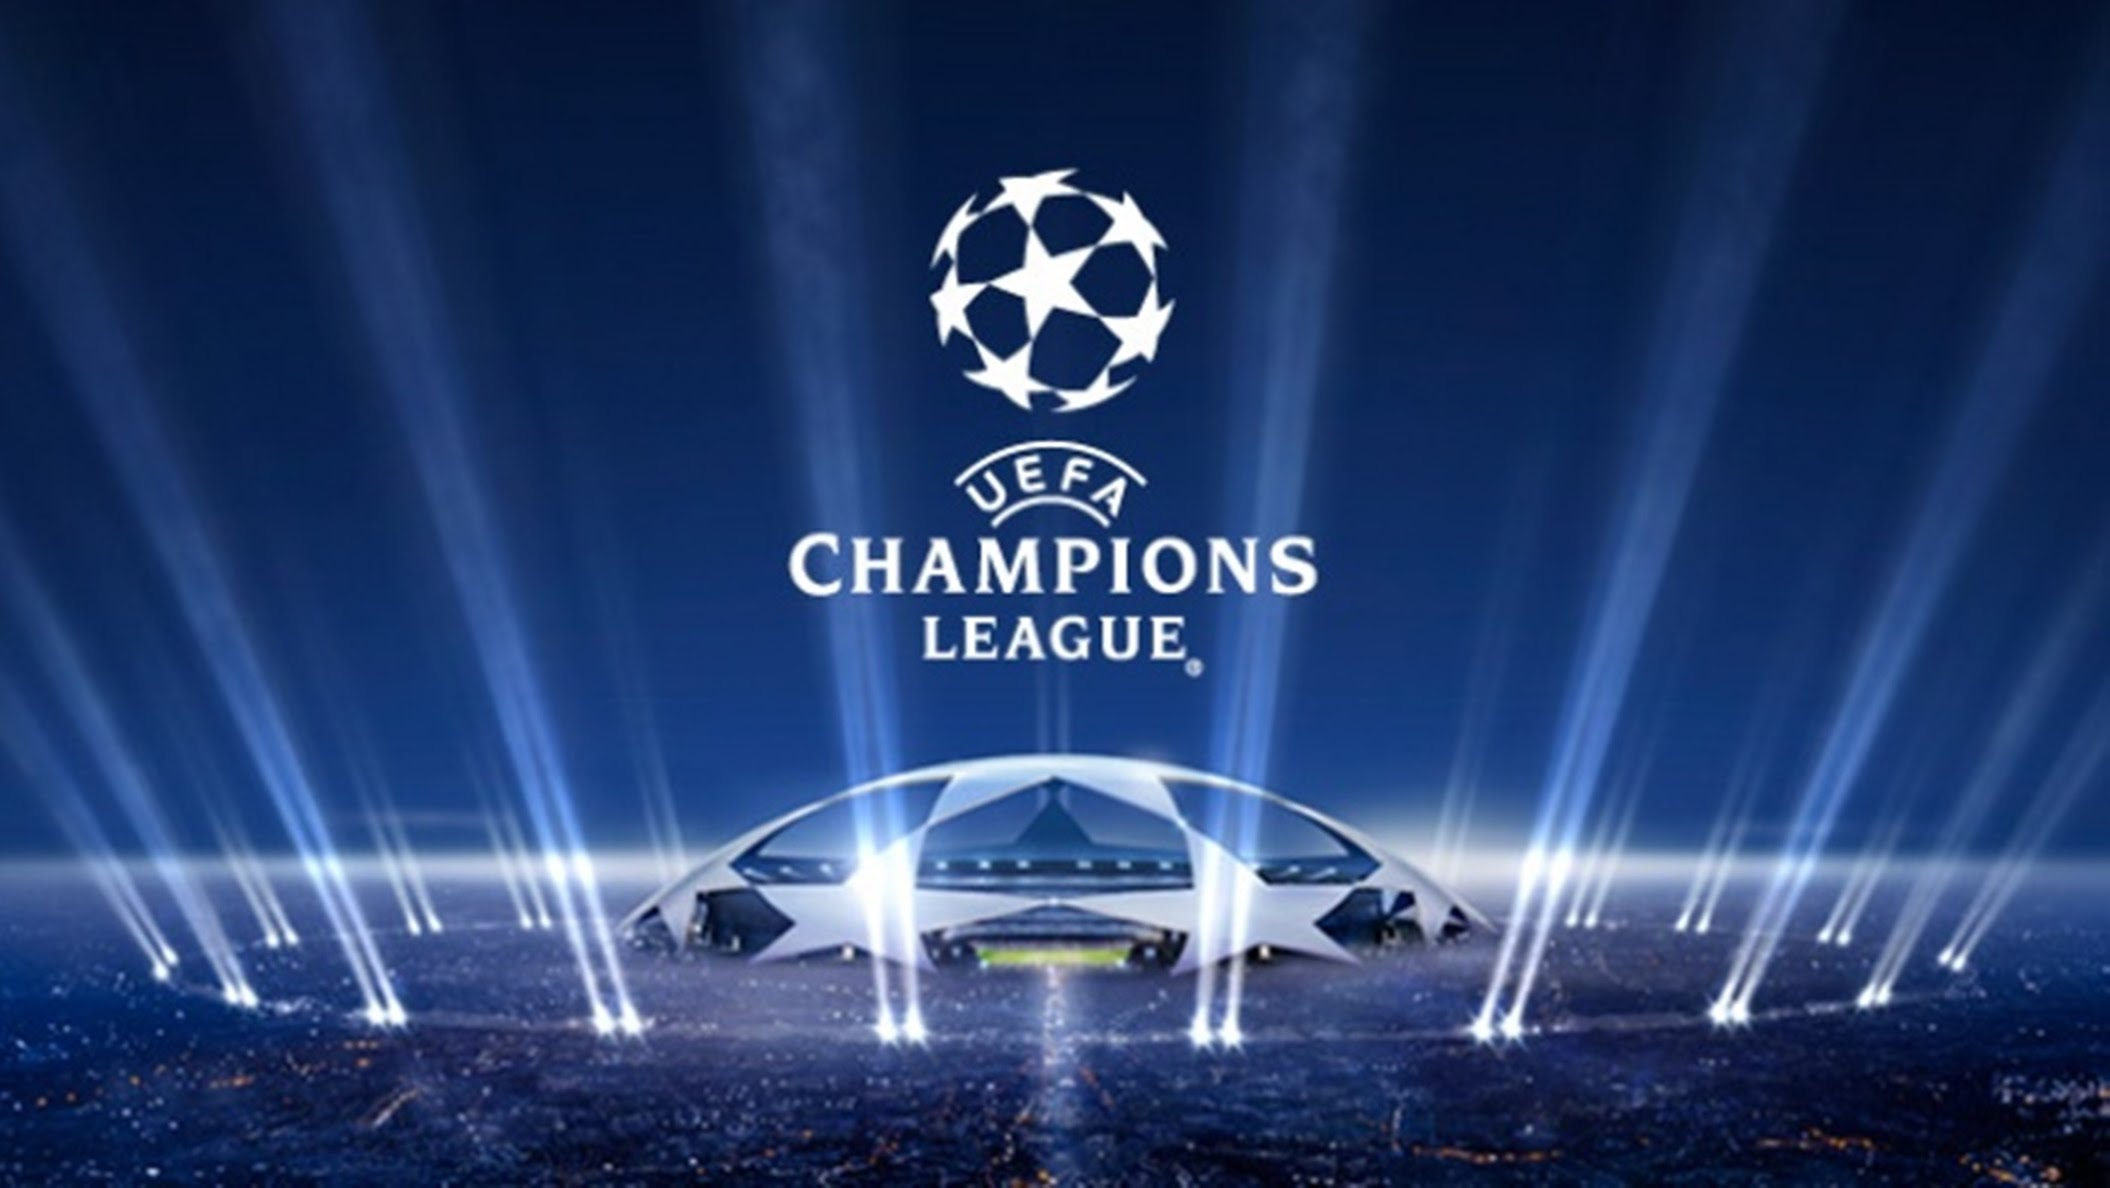 Champions League final: UEFA plans for final on 29 August